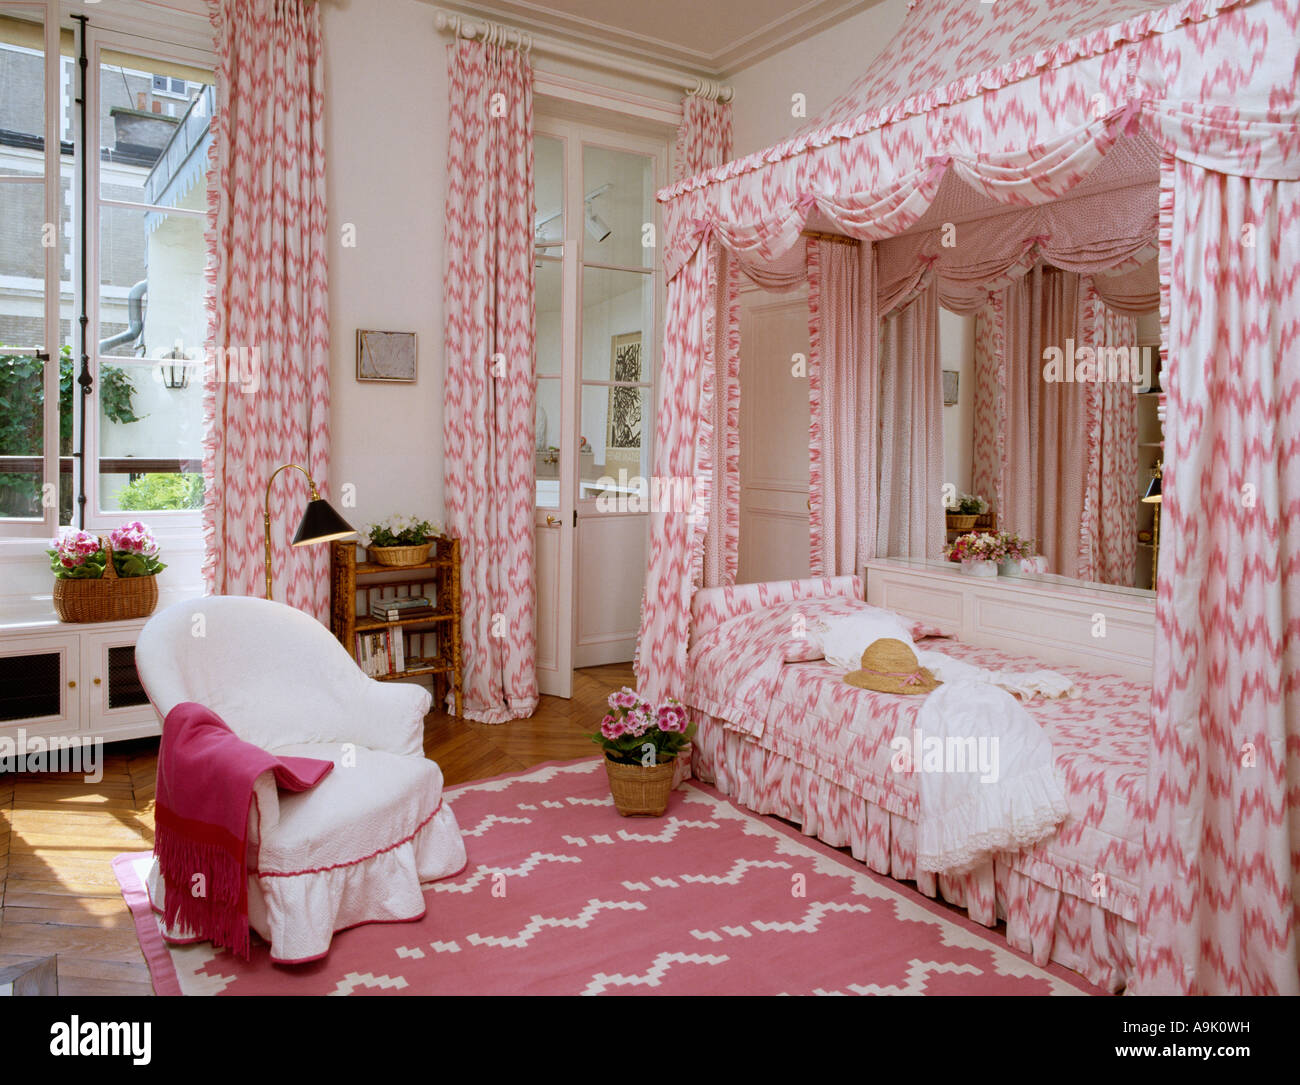 Pink and white canopy over bed in eighties bedroom with pink and white rug & Pink and white canopy over bed in eighties bedroom with pink and ...